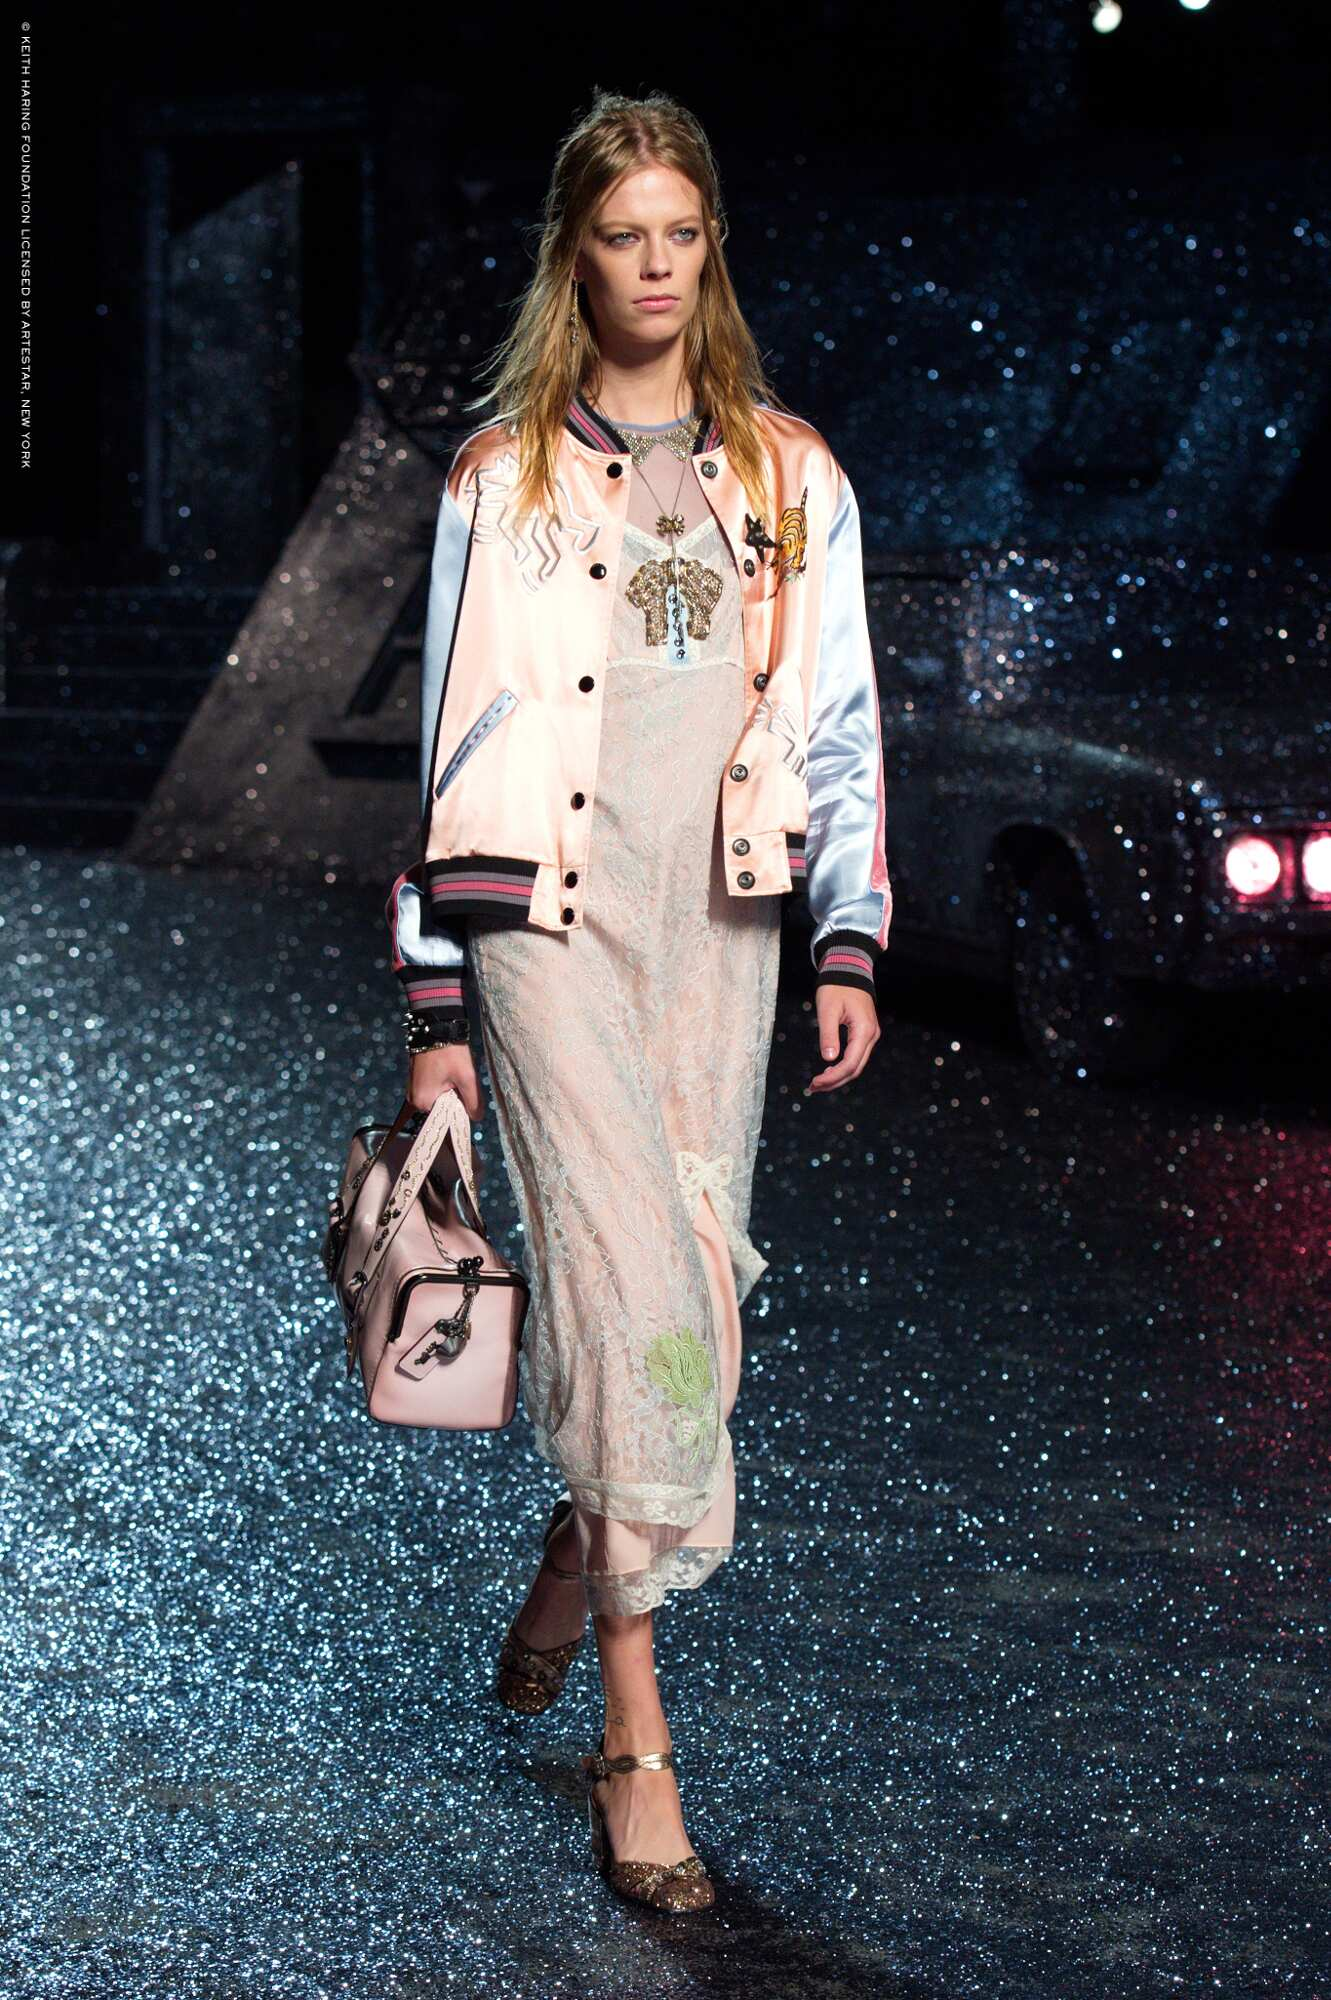 Coach 1941 Womenswear Collection Trends